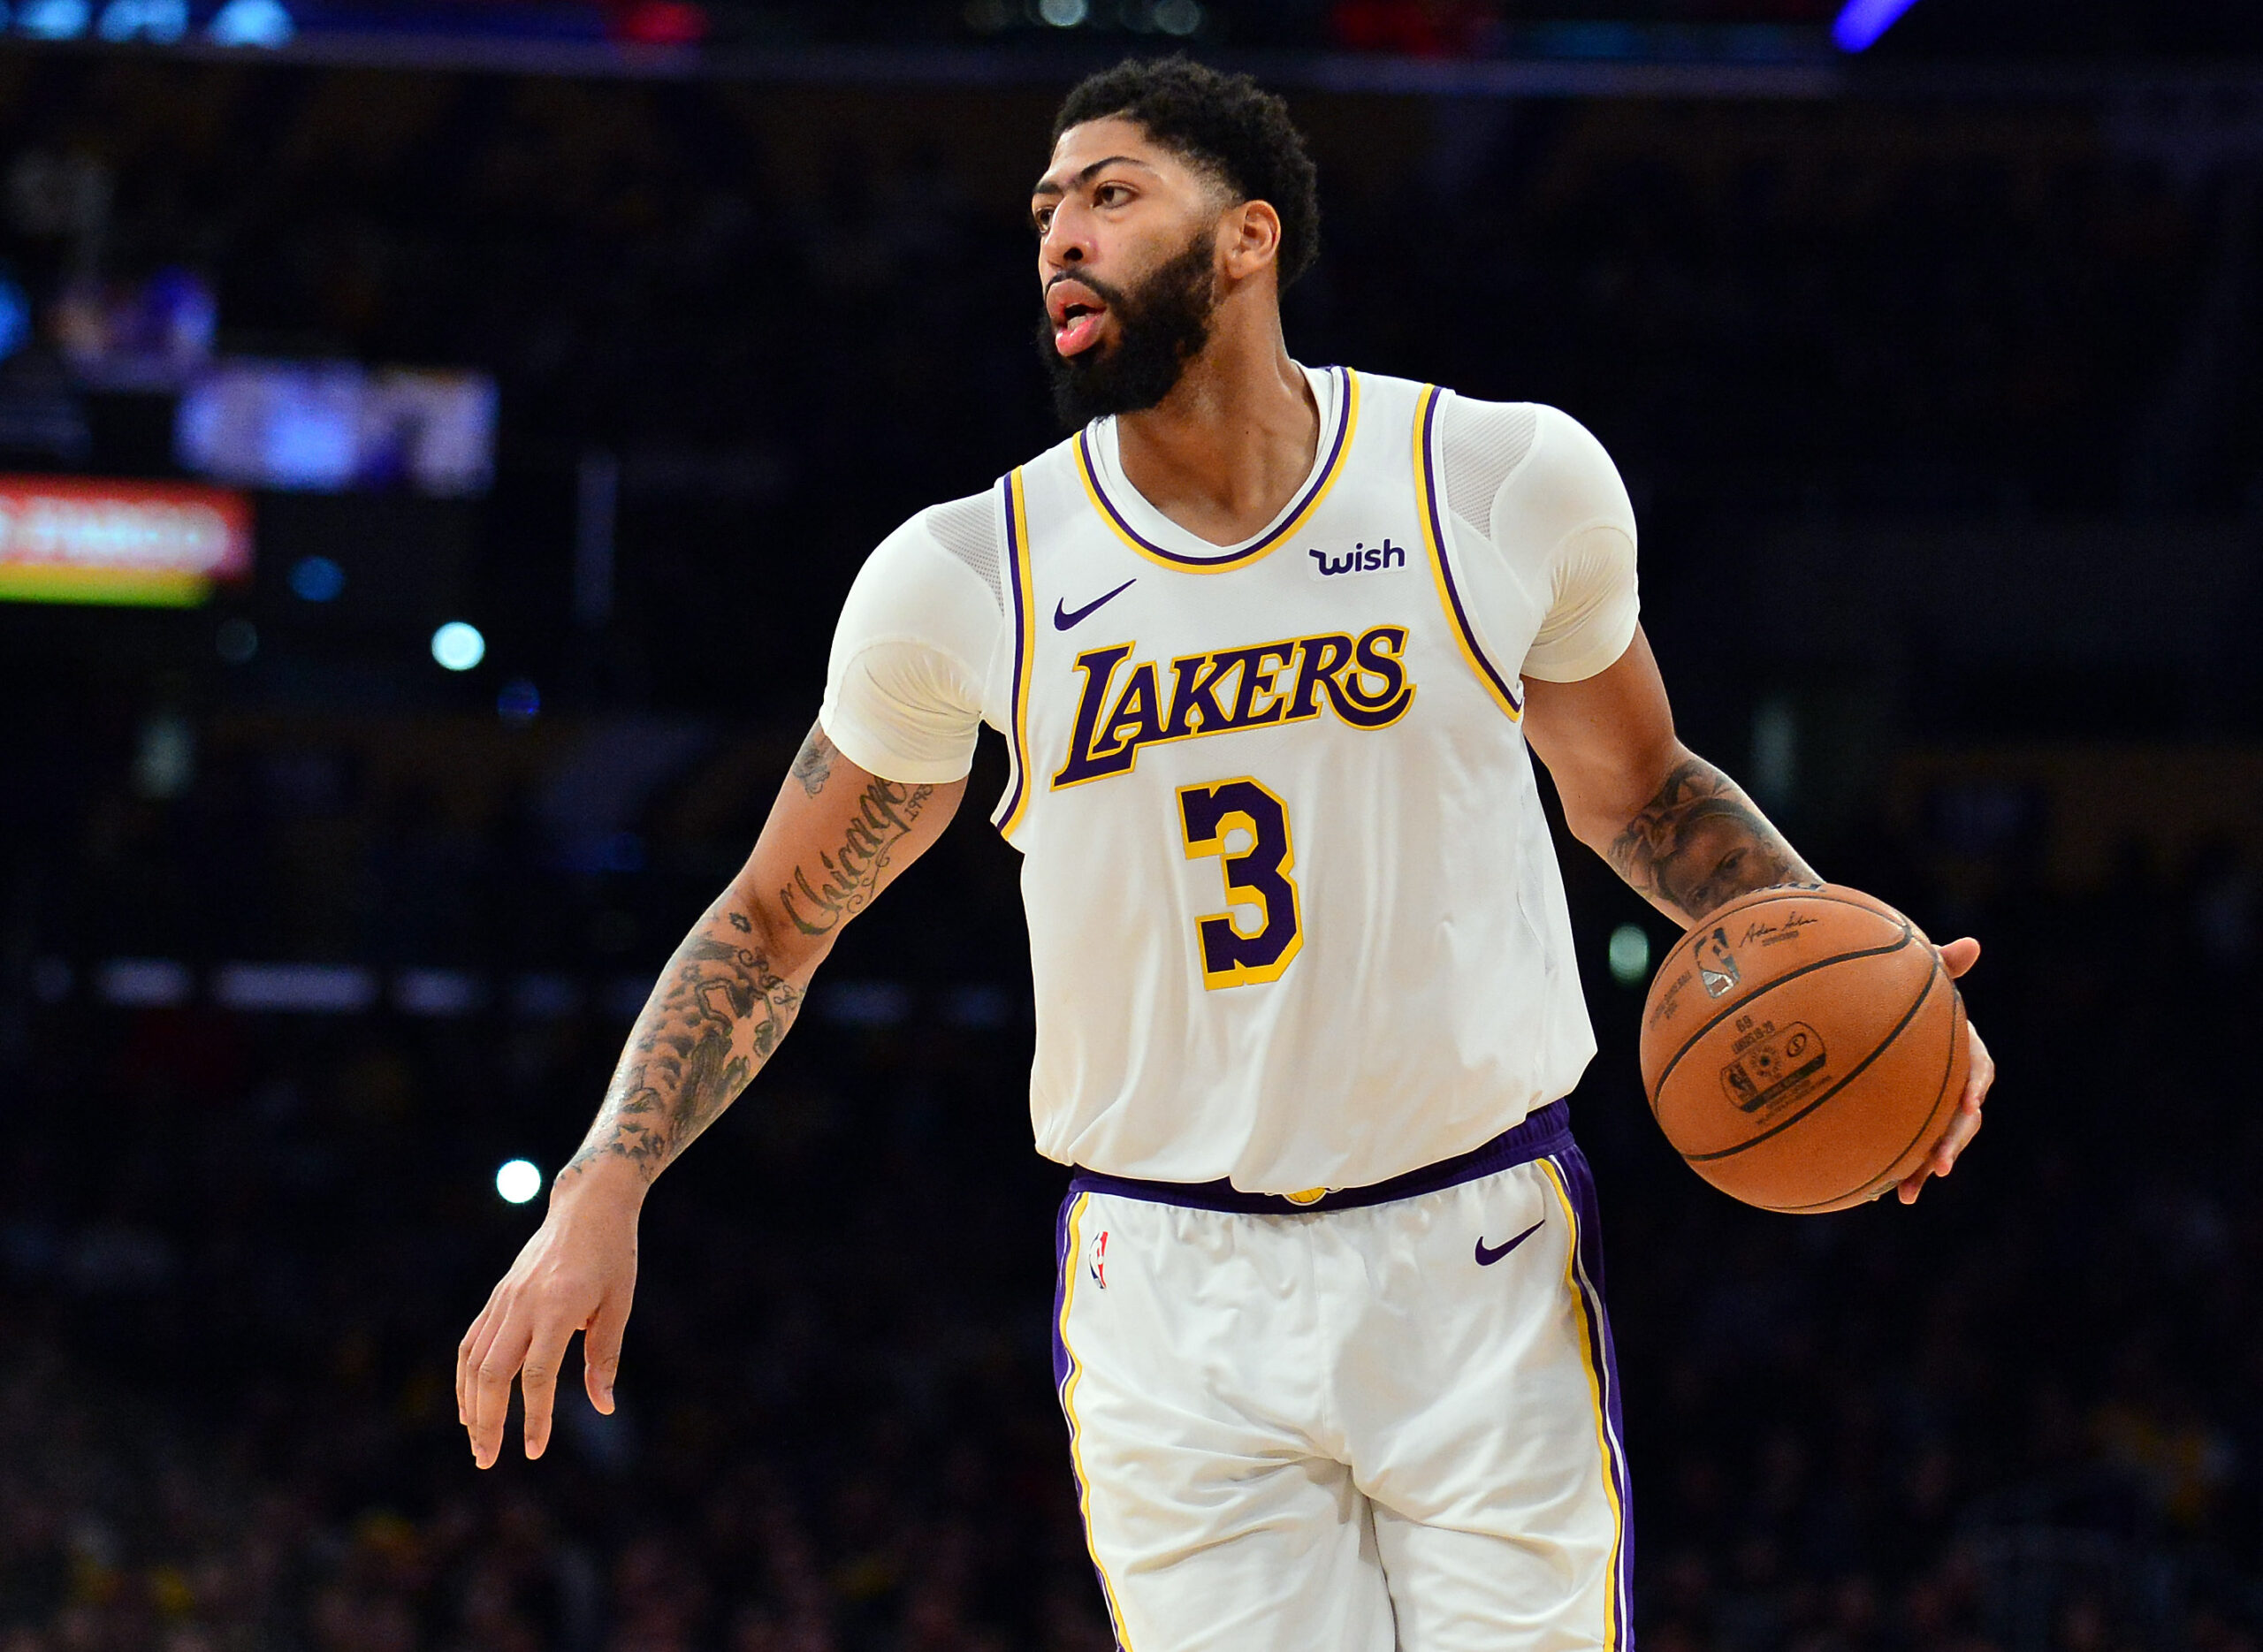 Lakers' Anthony Davis available to play vs. Celtics